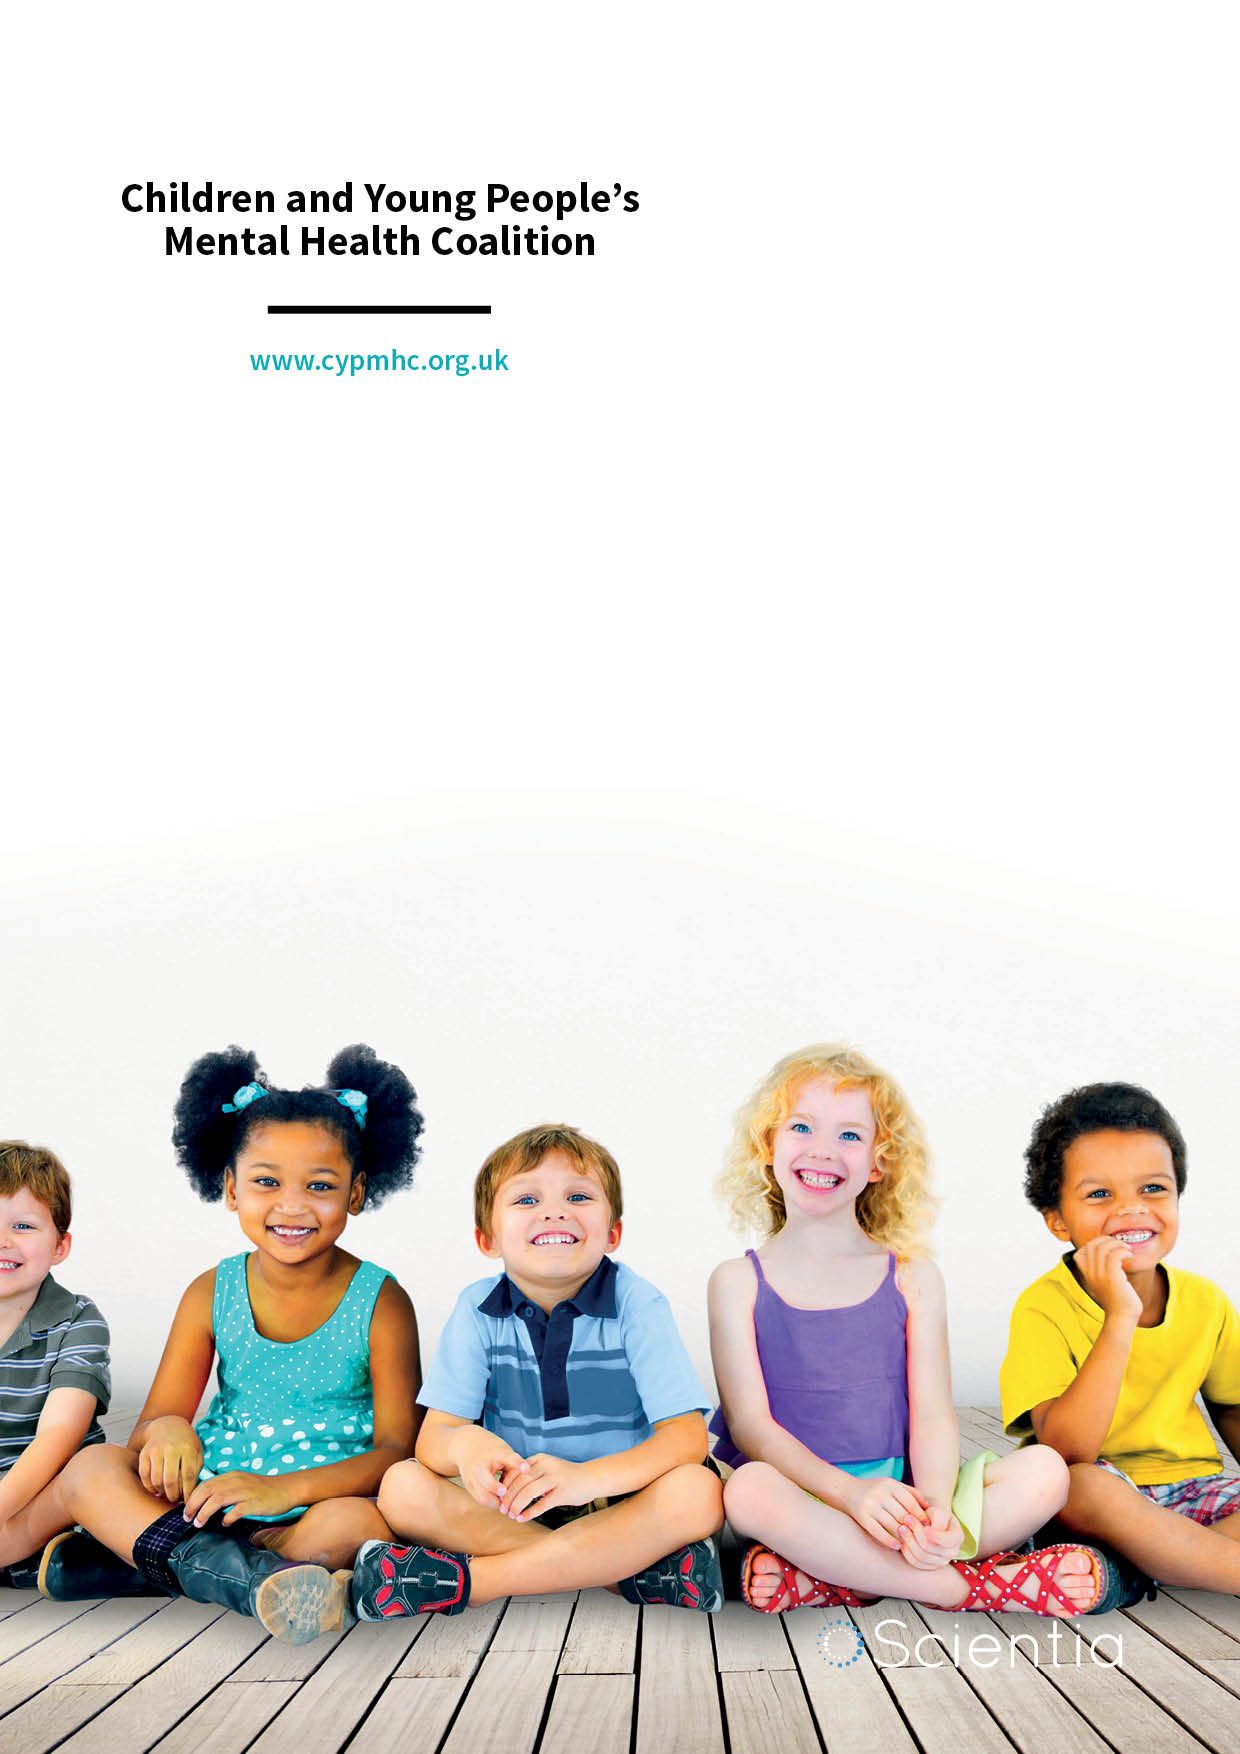 Children and Young People's Mental Health Coalition